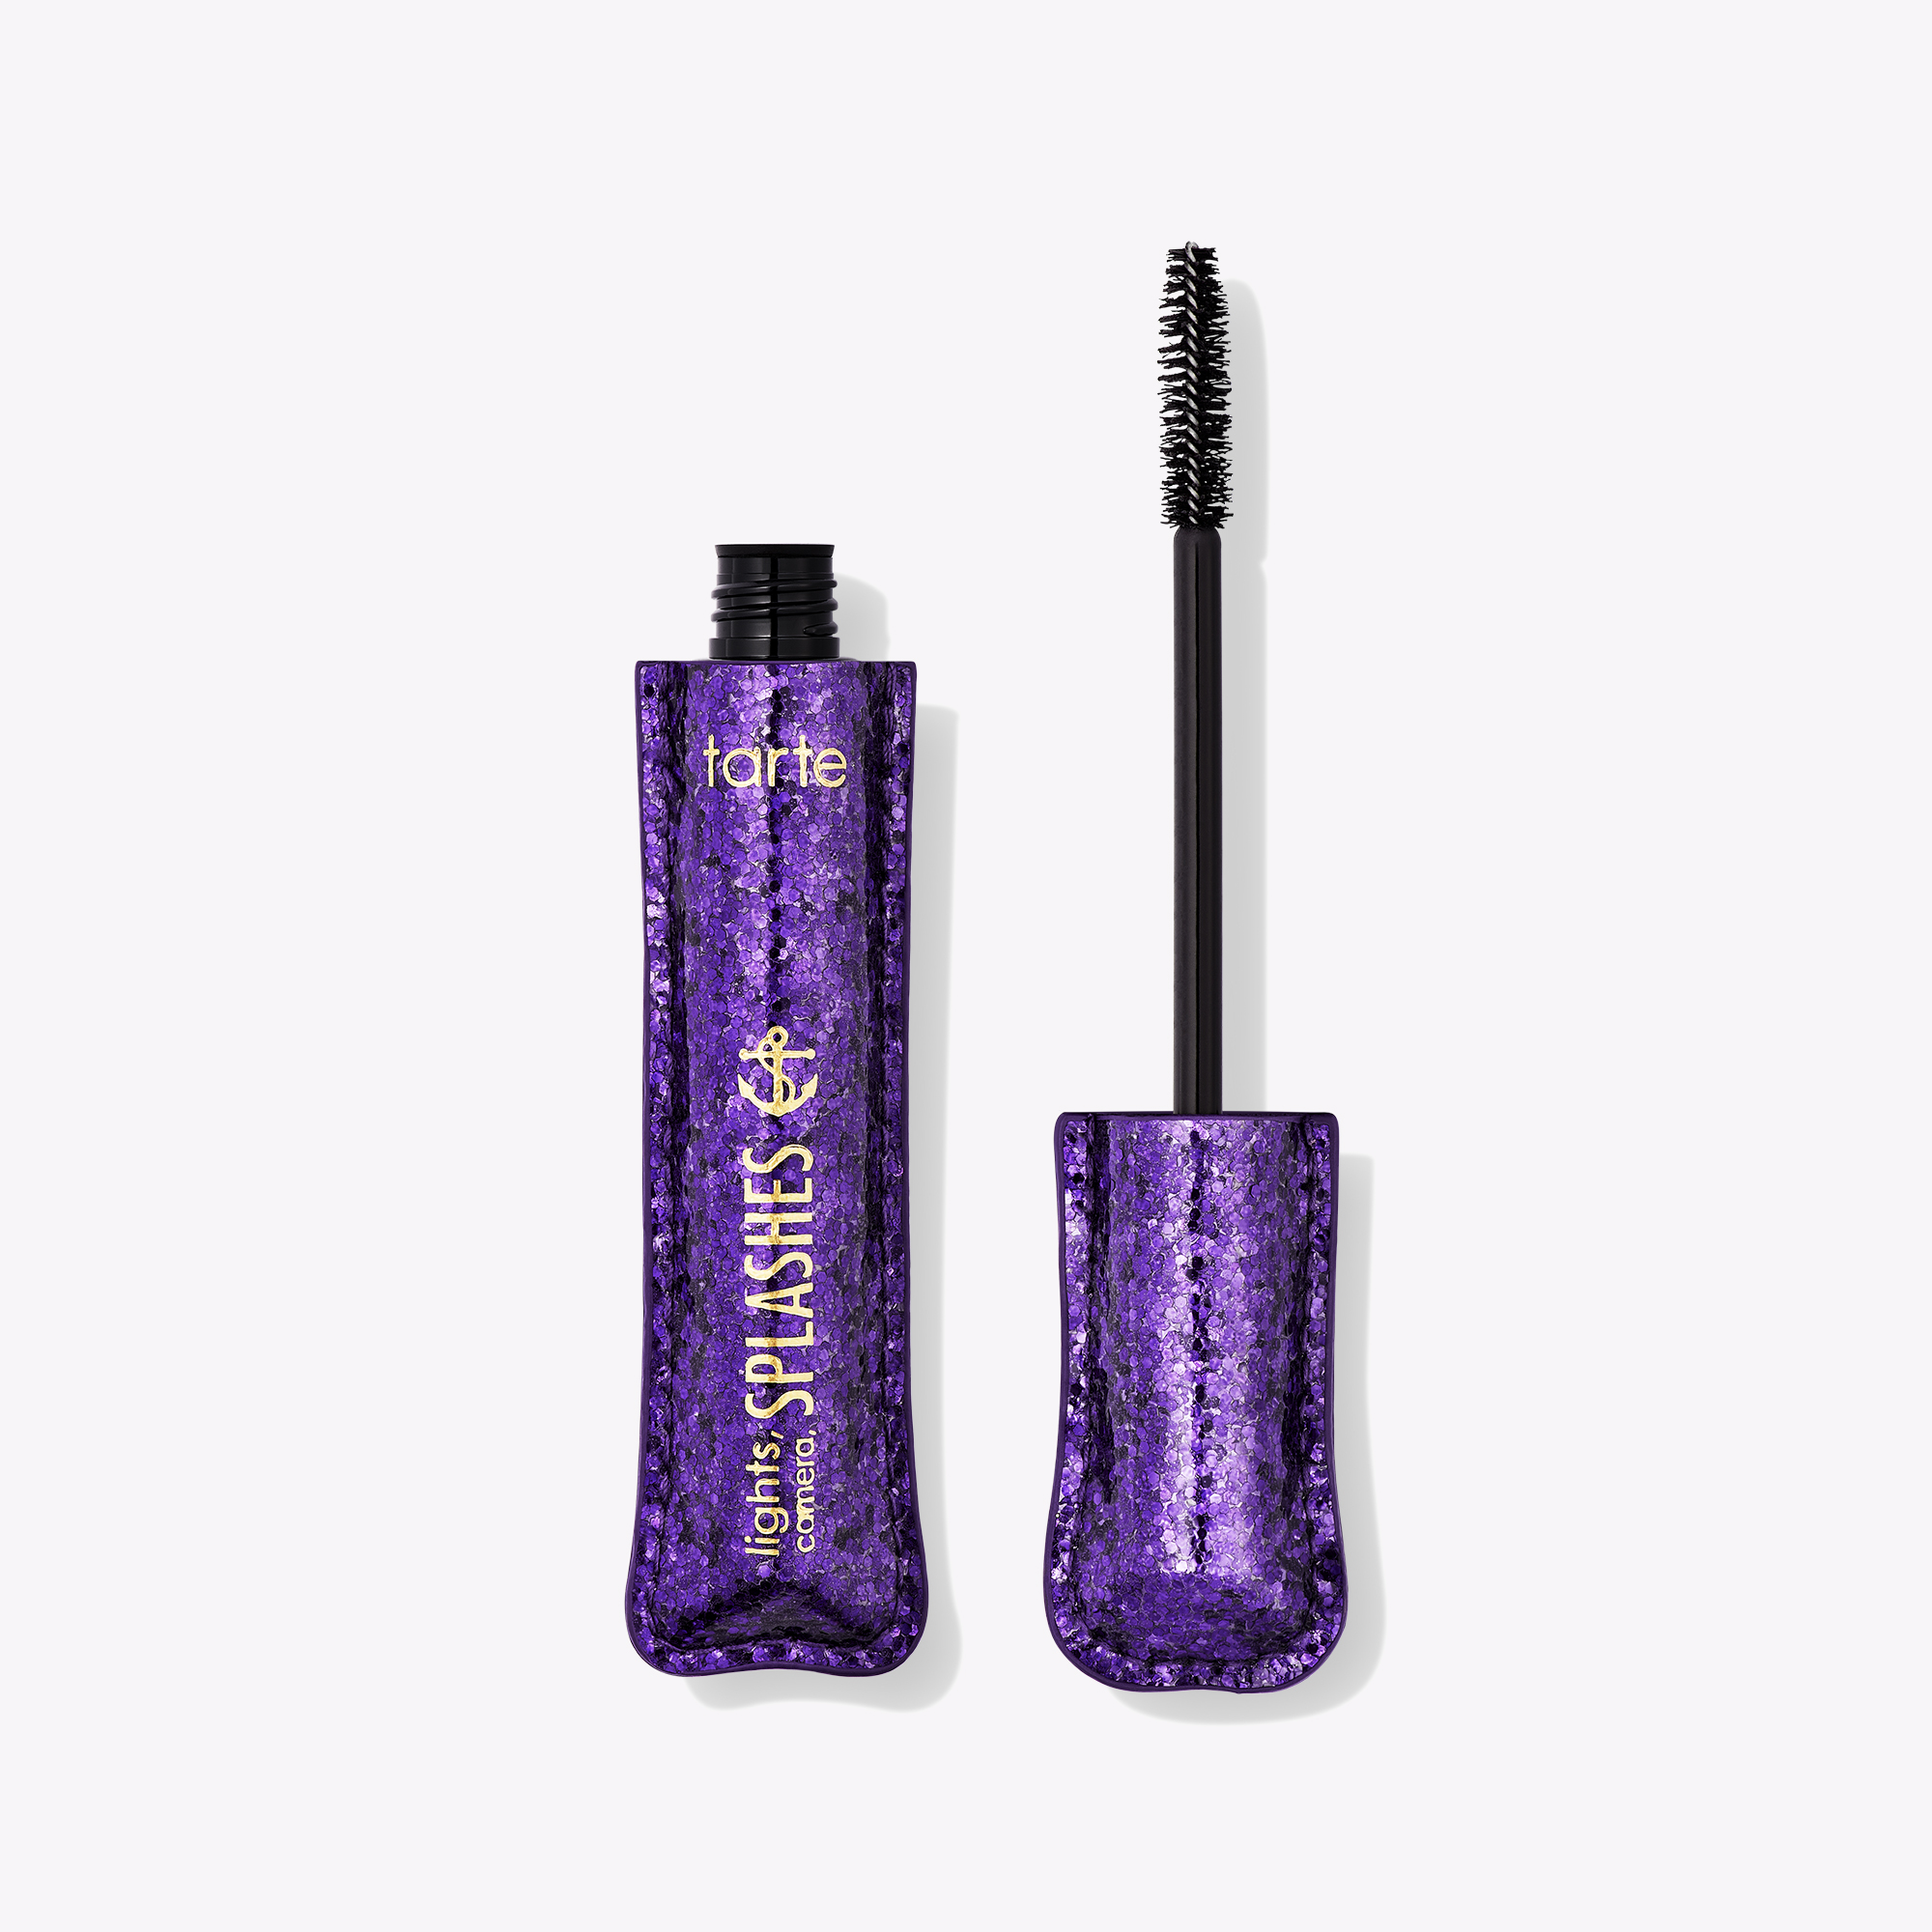 6a6c8a27706 lights, camera, splashes™ waterproof mascara lights, camera, splashes™  waterproof mascara